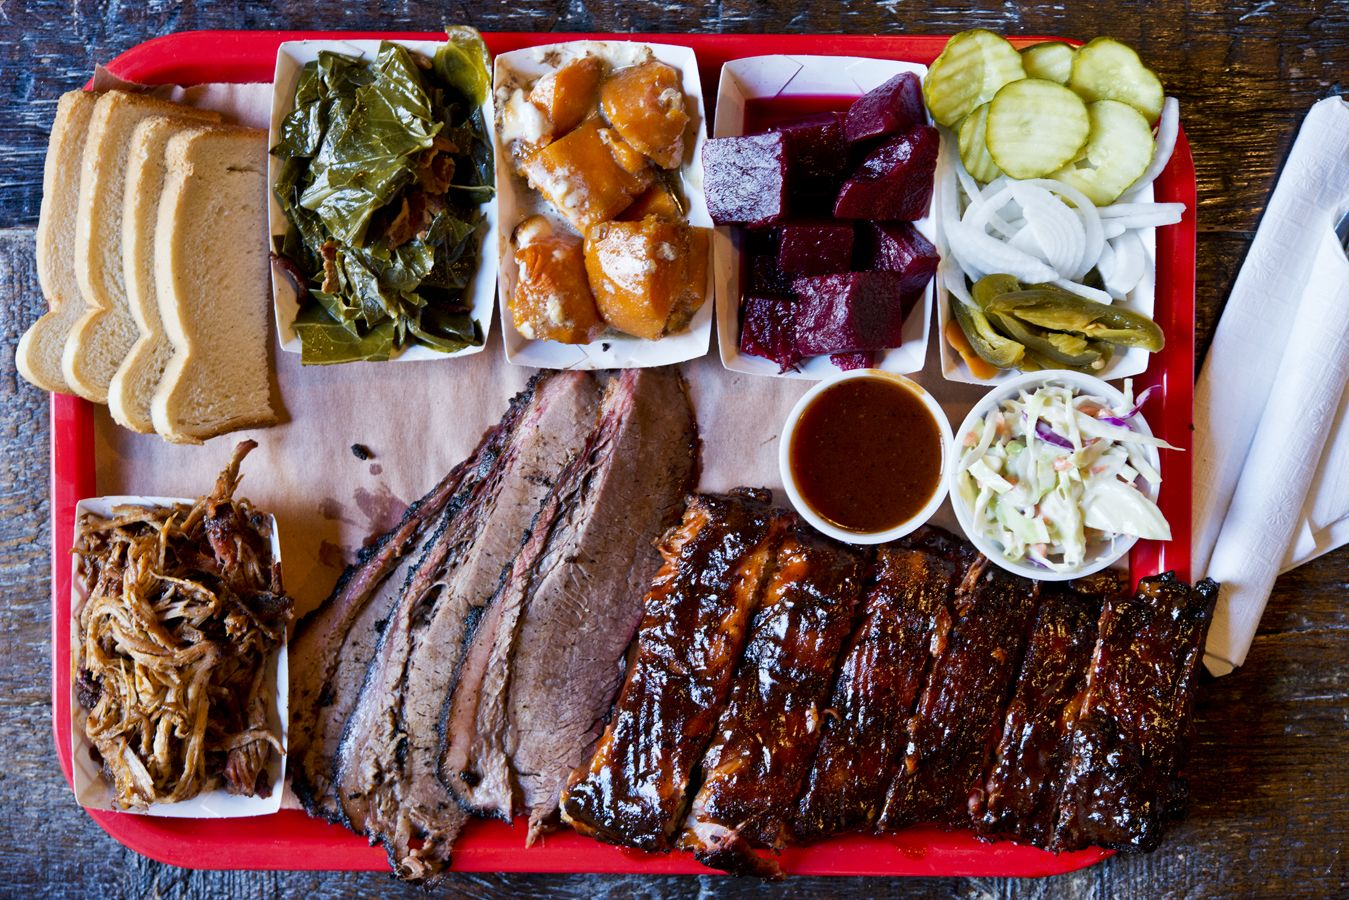 DELUXE PLATTER. Half slab St. Louis ribs, pulled pork, beef brisket. House pickled beets, collard greens, candied yams. Pickles, jalapenos, white bread, small cup of slaw.